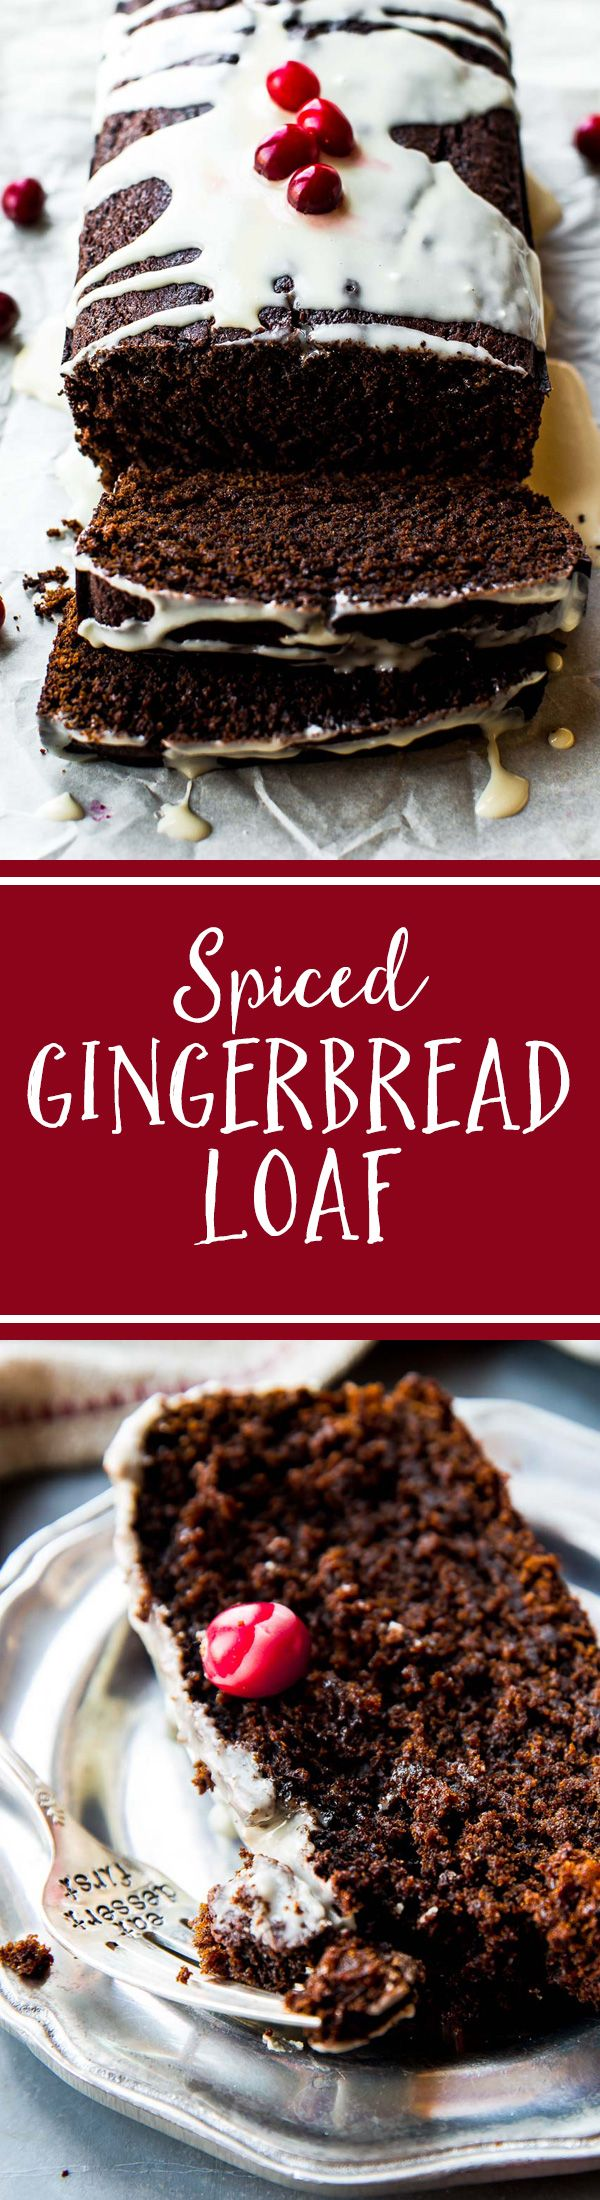 Spiced gingerbread loaf that's soft, moist, and intensely flavored like the holidays with molasses and ginger! Recipe on sallysbakingaddiction.com #Kuchen #Backen